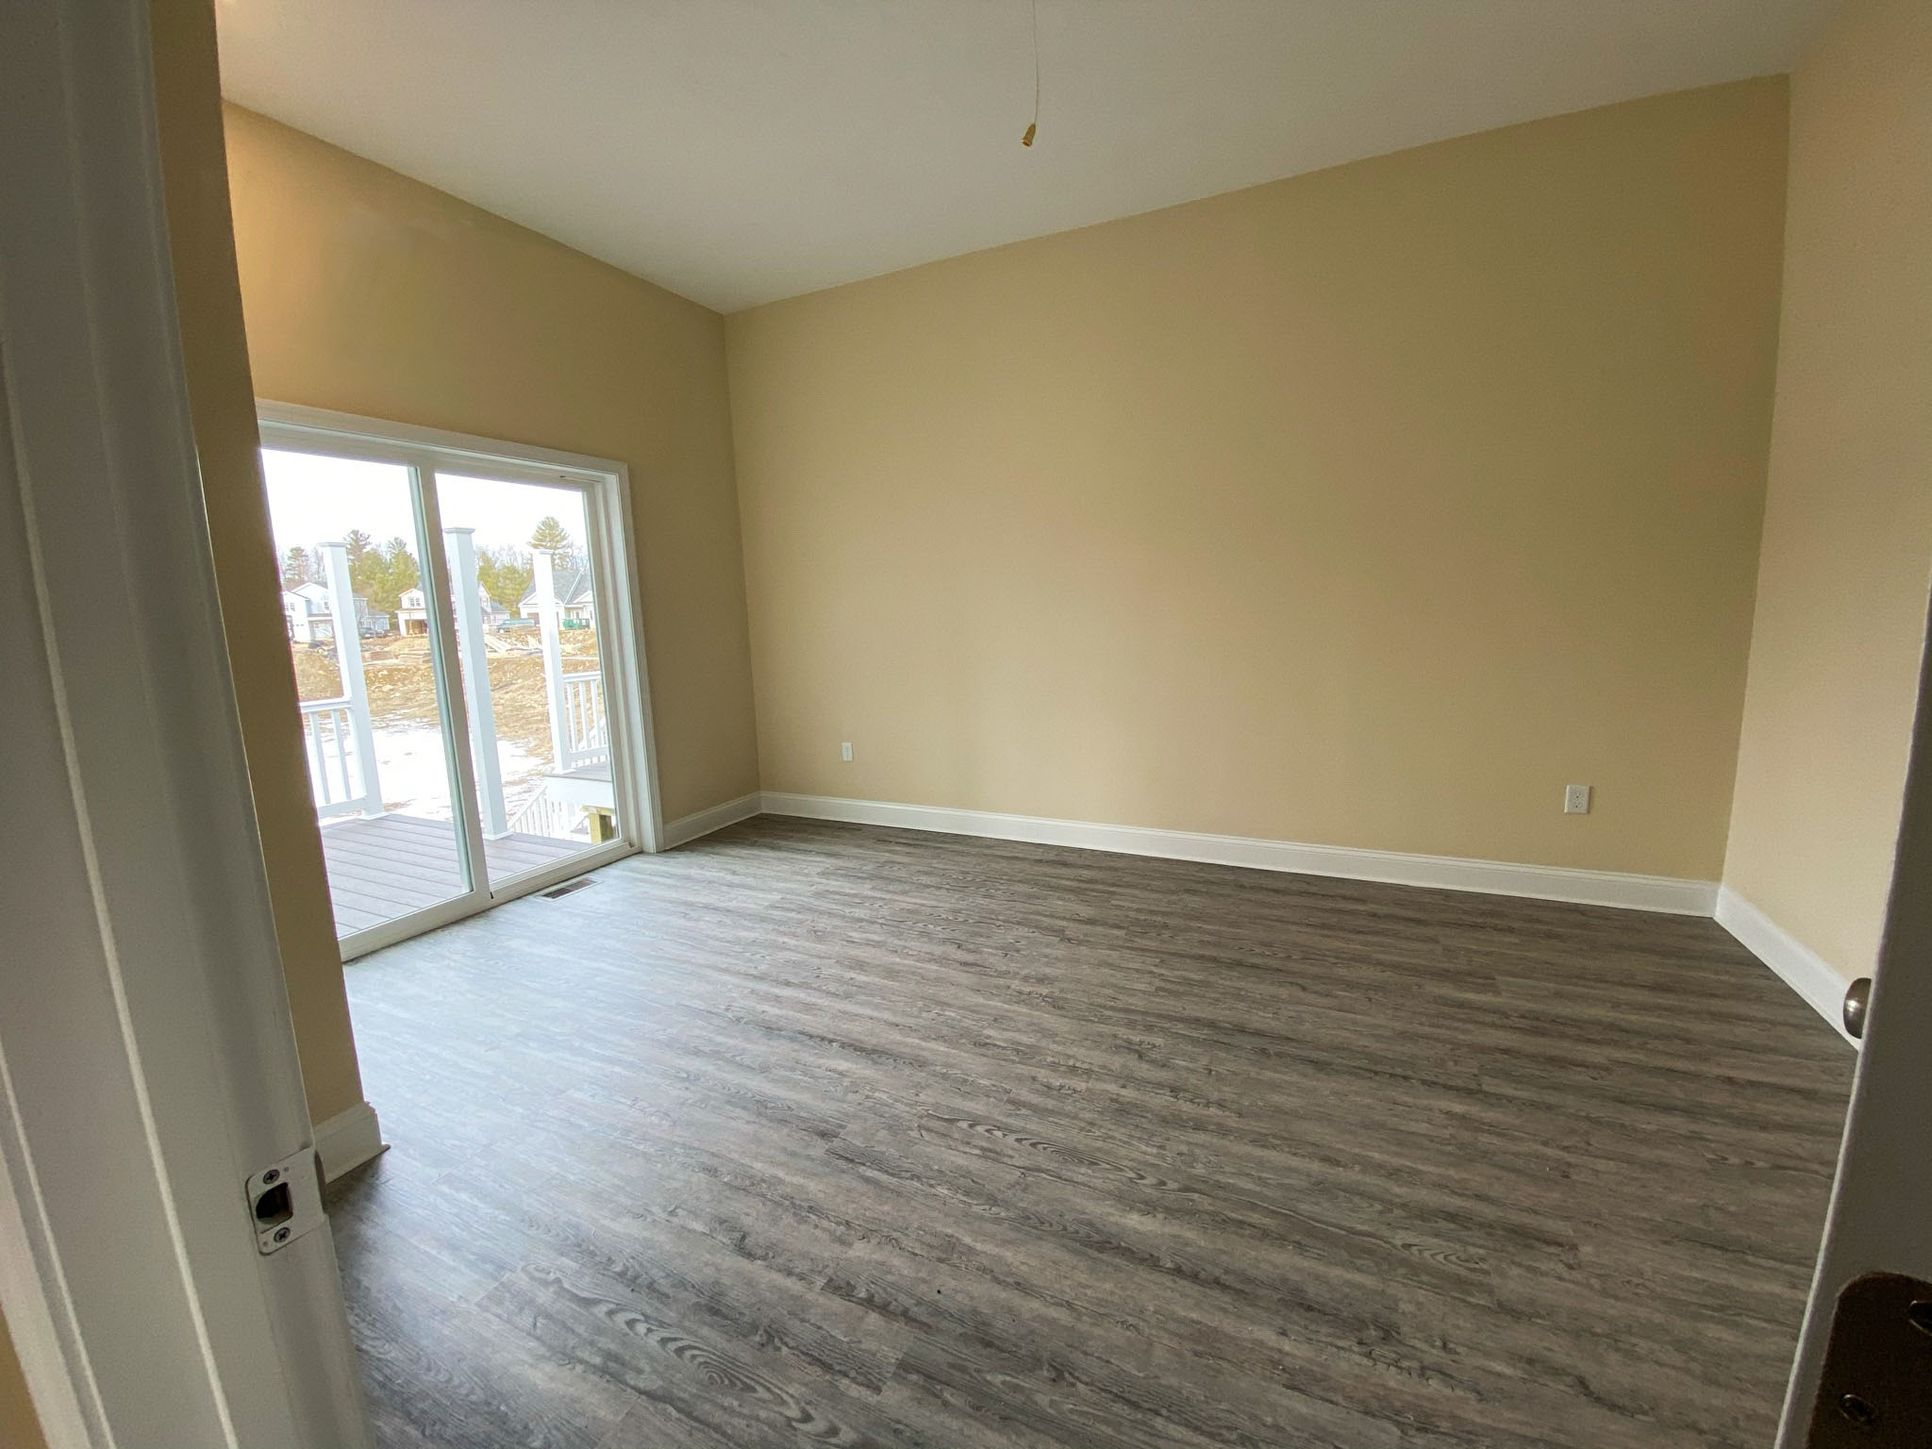 Bedroom:Similar to be built